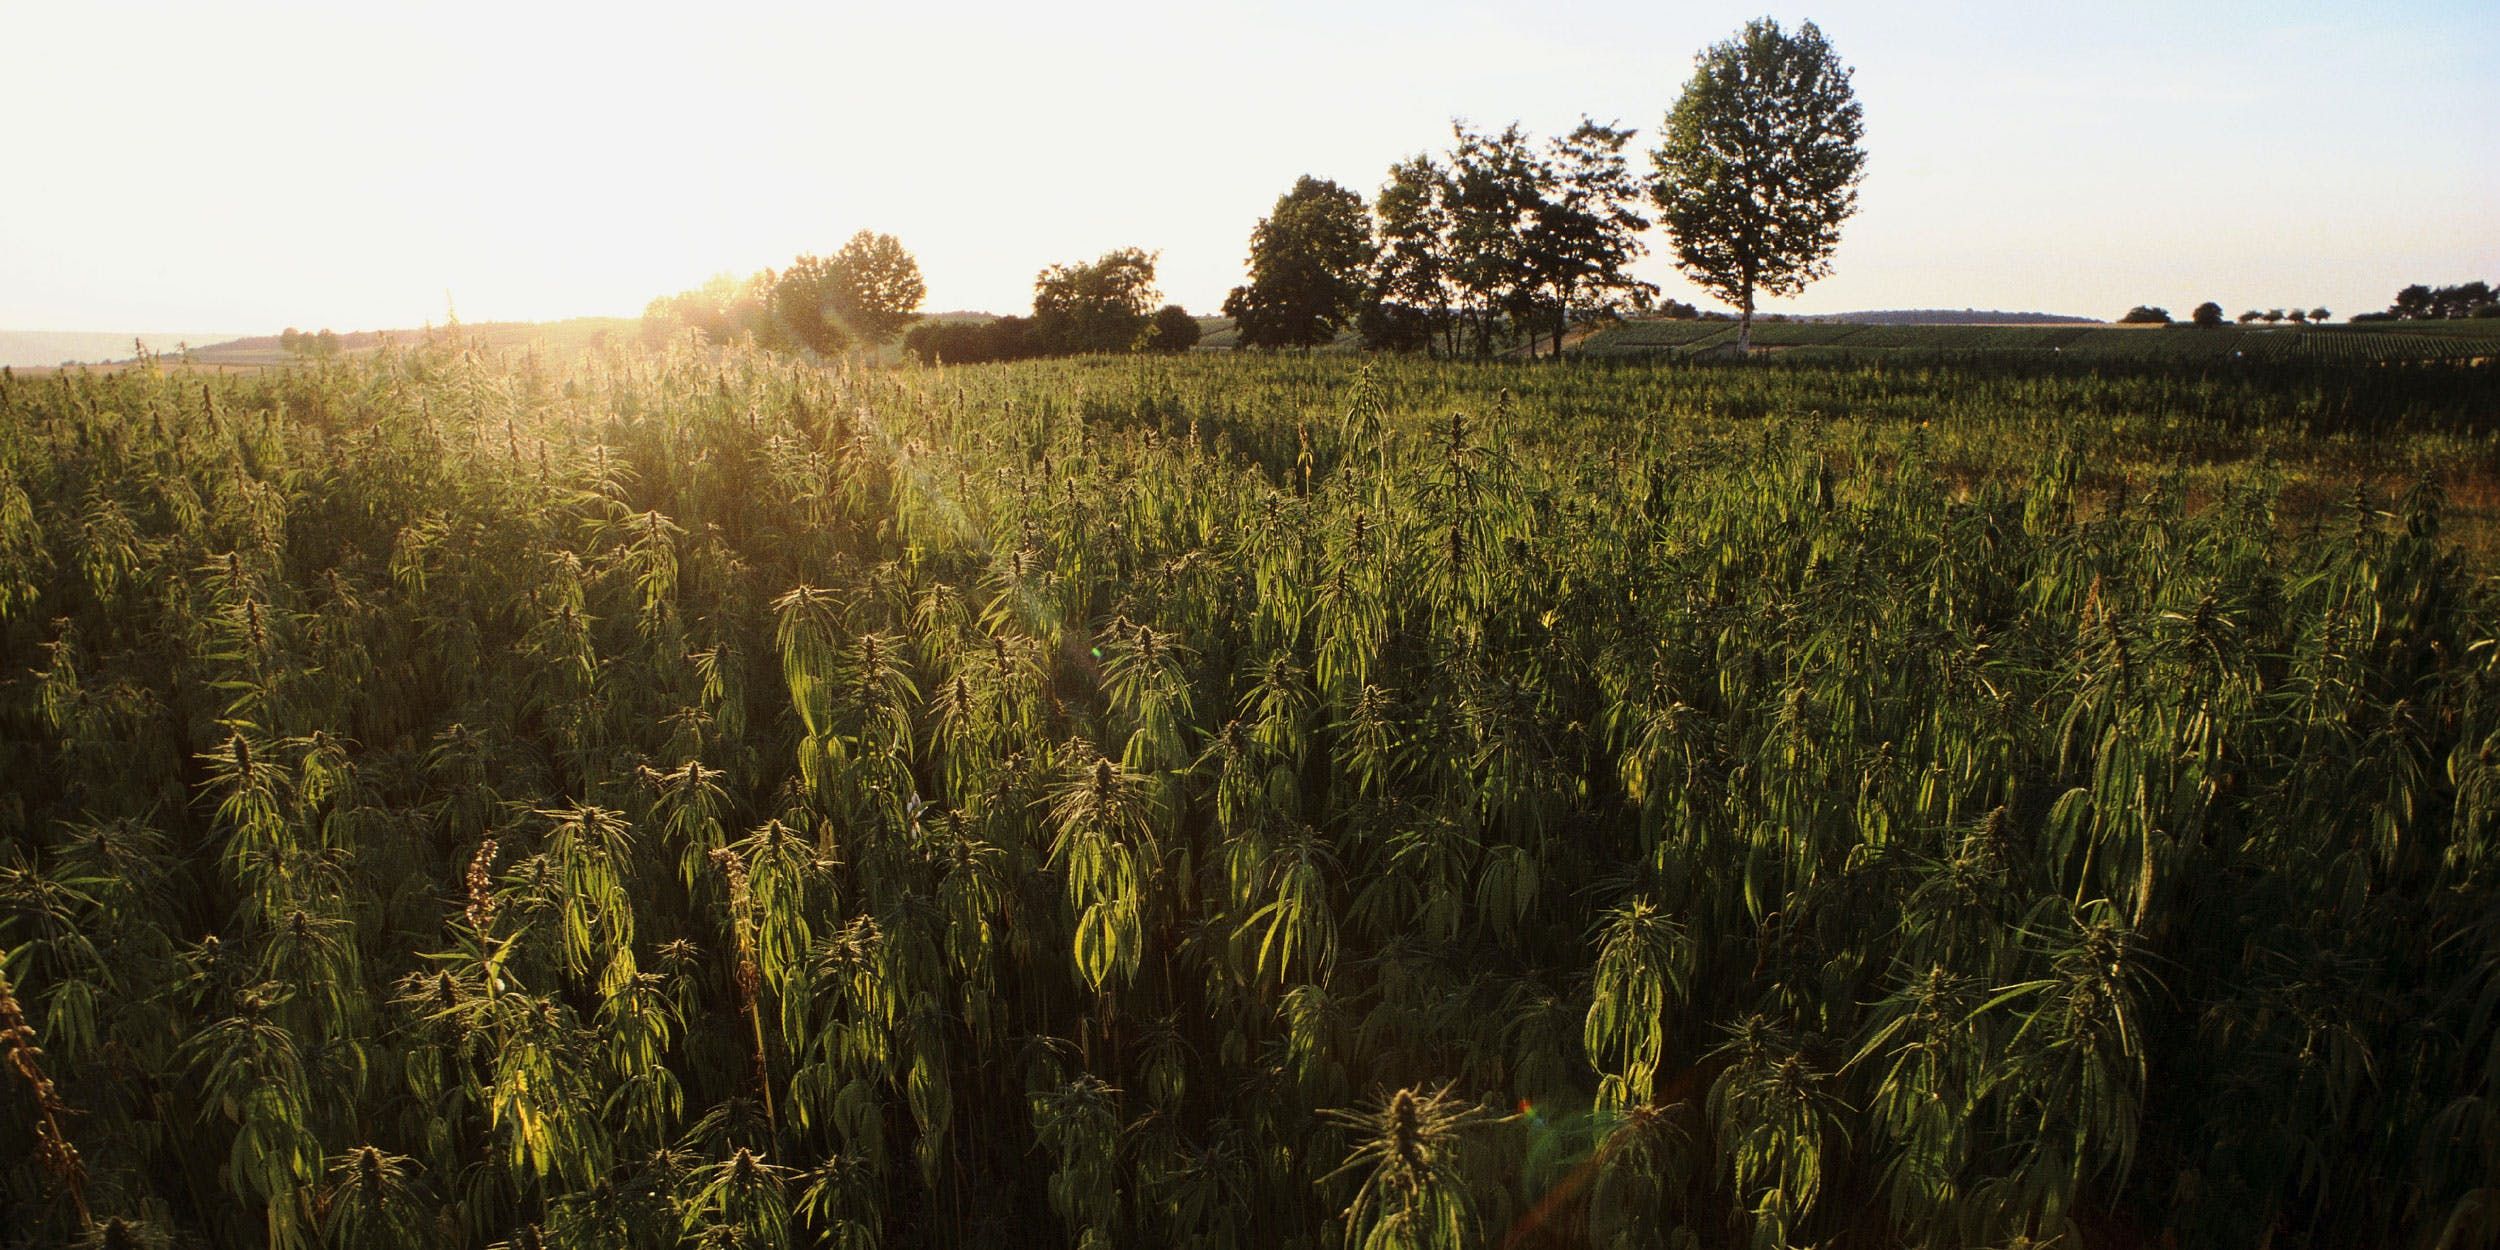 Cannabis Field in France. Meadows of cannabis once used to cover regions in ancient Europe.